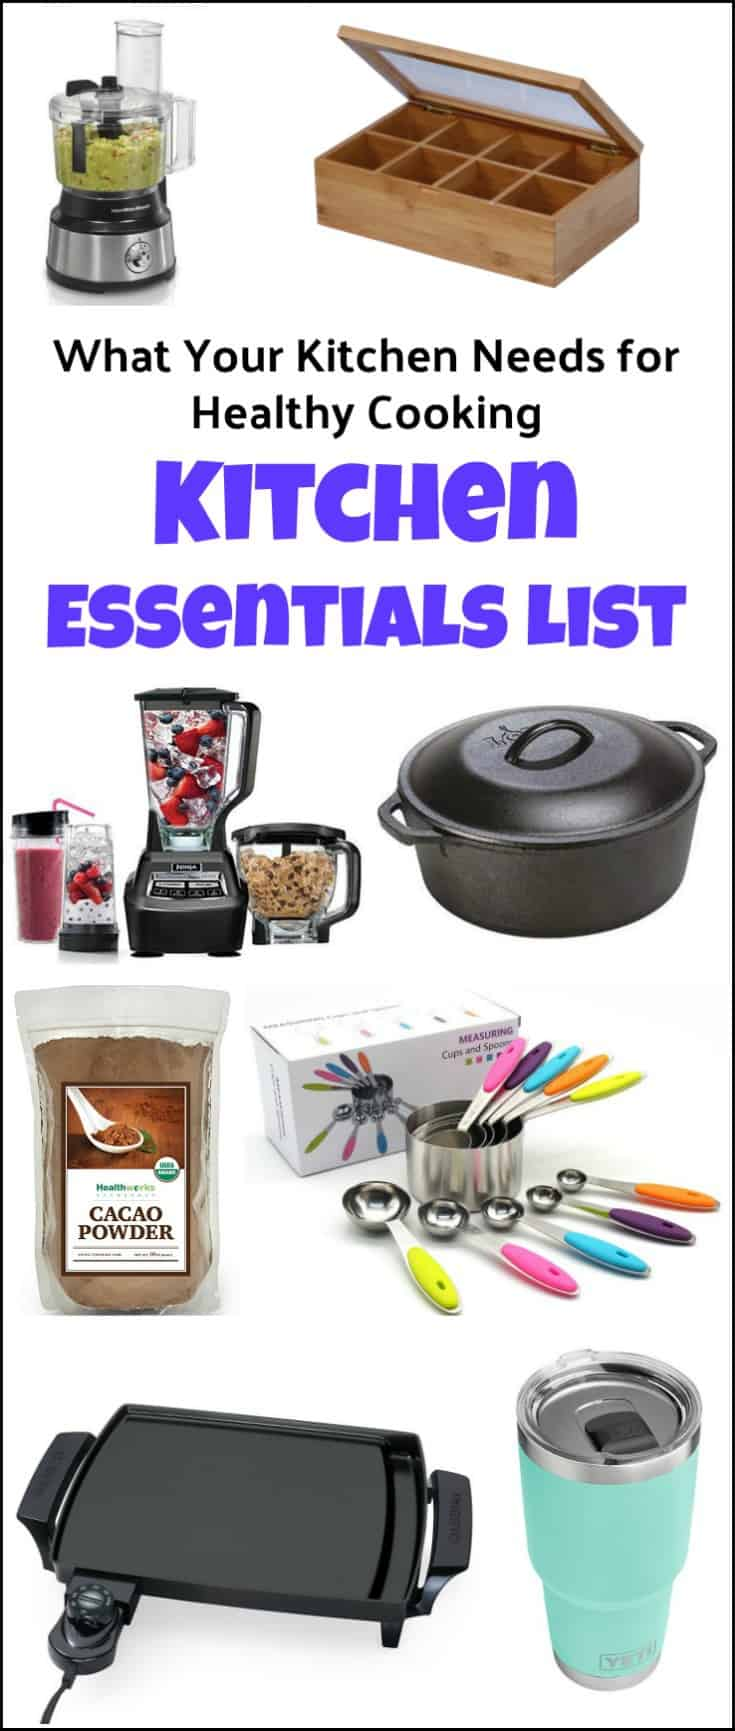 What's in my kitchen? Here is a kitchen essentials list of items that your kitchen needs when preparing healthy clean foods. Ideal for on the go, meal prep, and easy cooking. Kitchen necessities, kitchen items checklist, kitchen supplies list, kitchen essentials, cooking essentials, must have kitchen items list